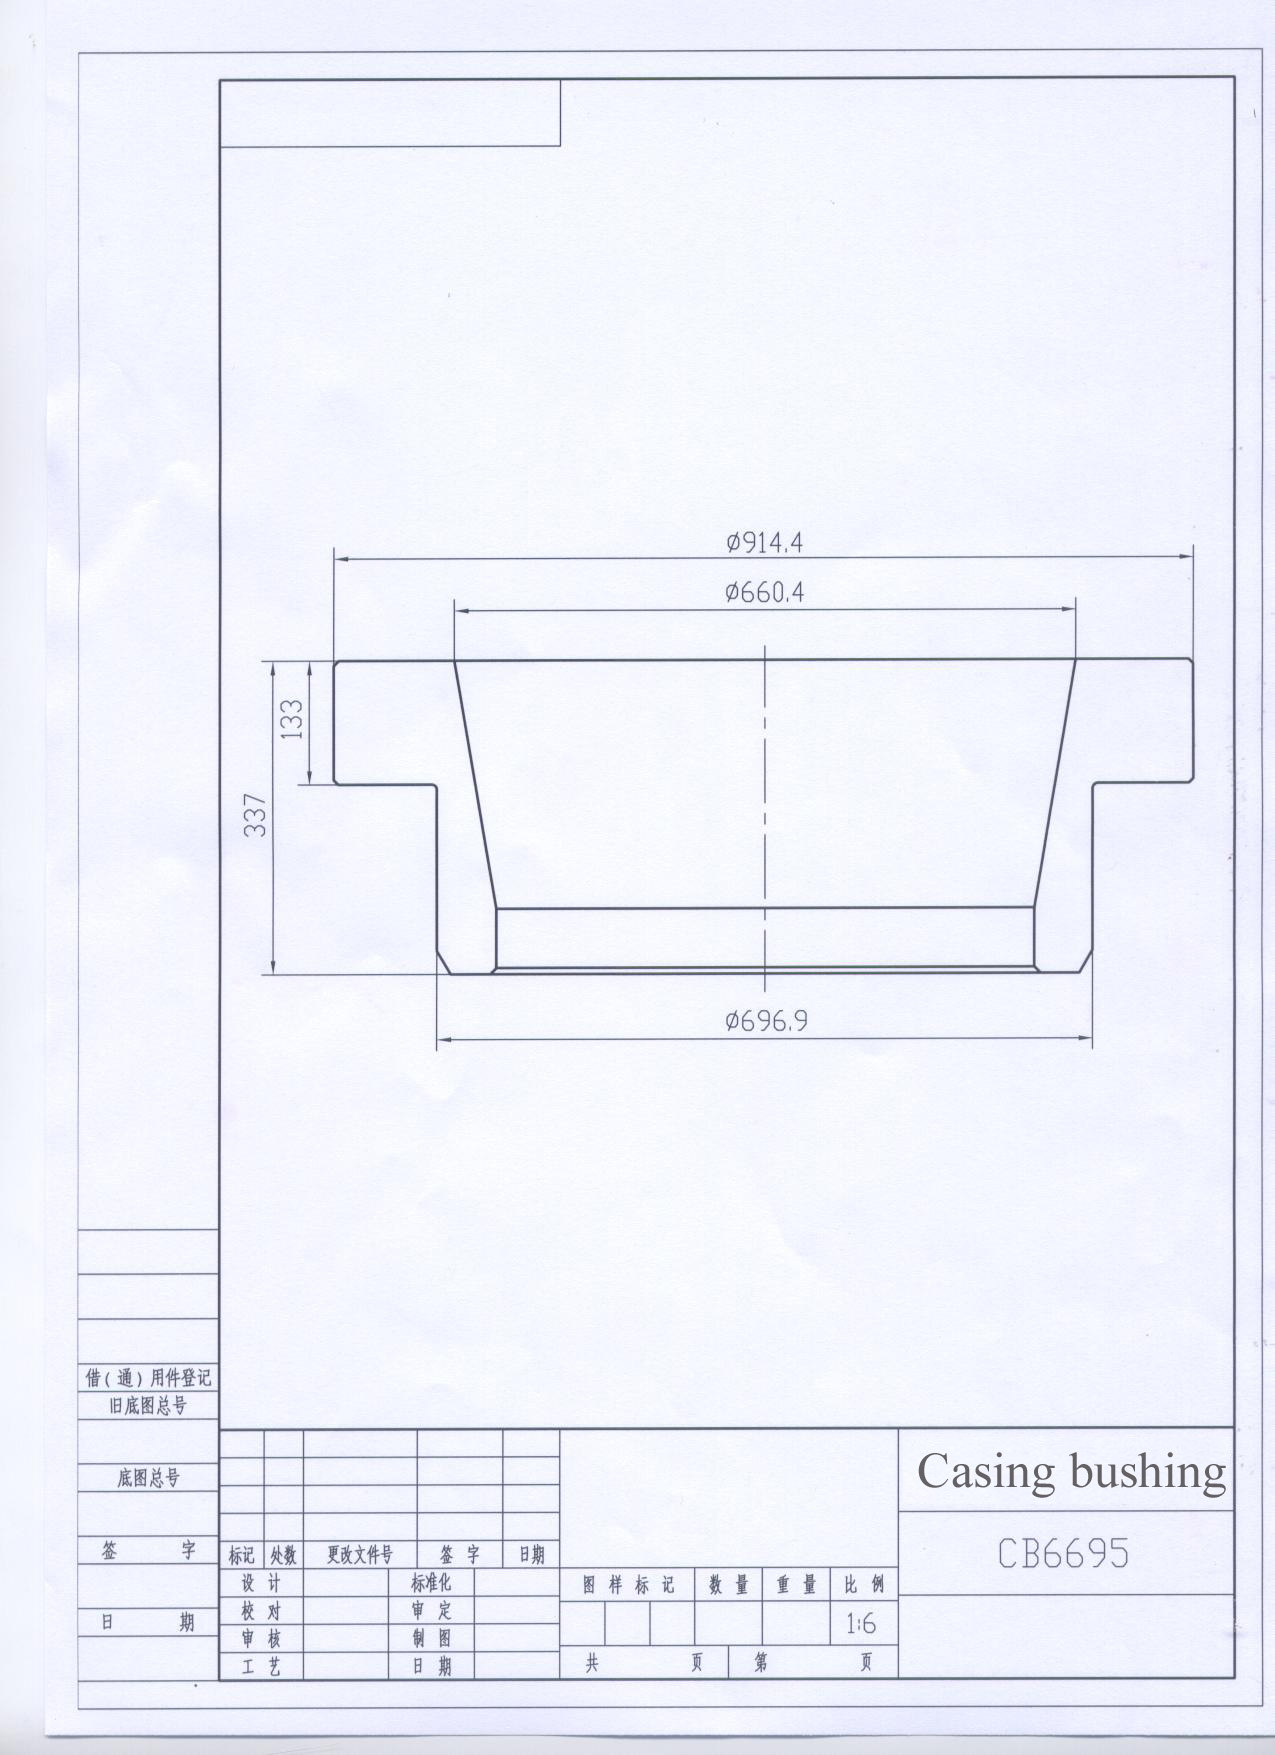 CB 6695 casing bushing drawing